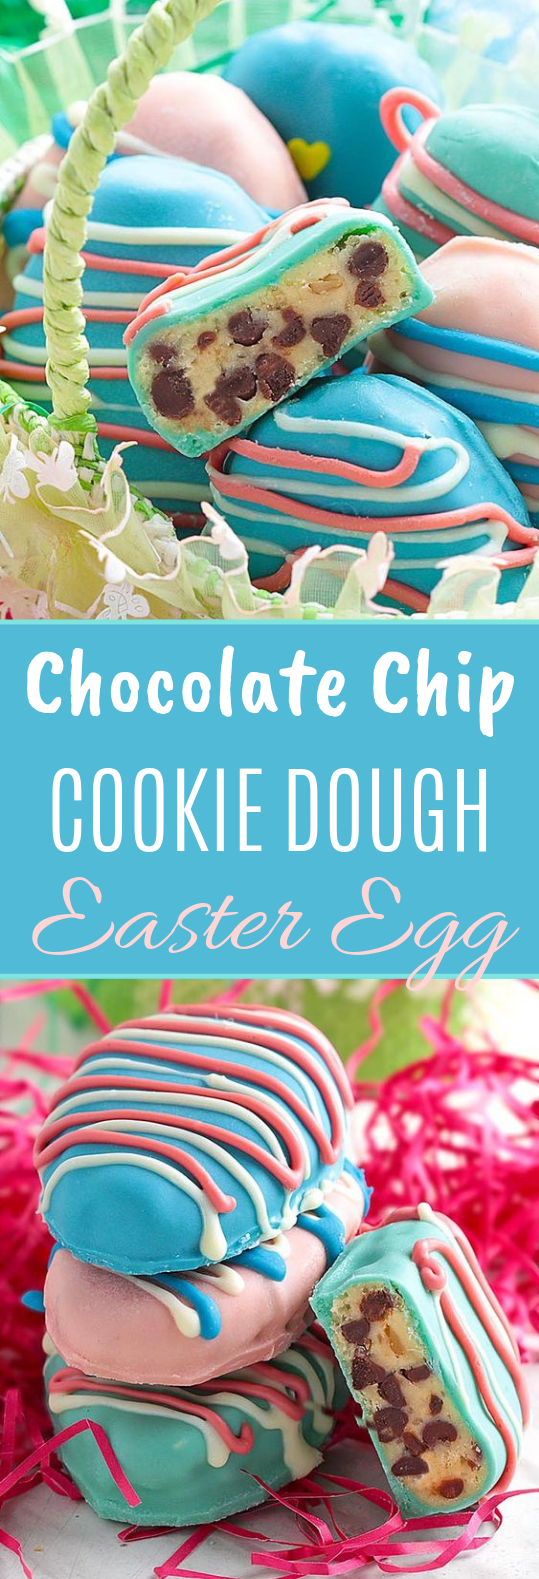 Easter Egg Cookie Dough Truffles #dessert #truffles